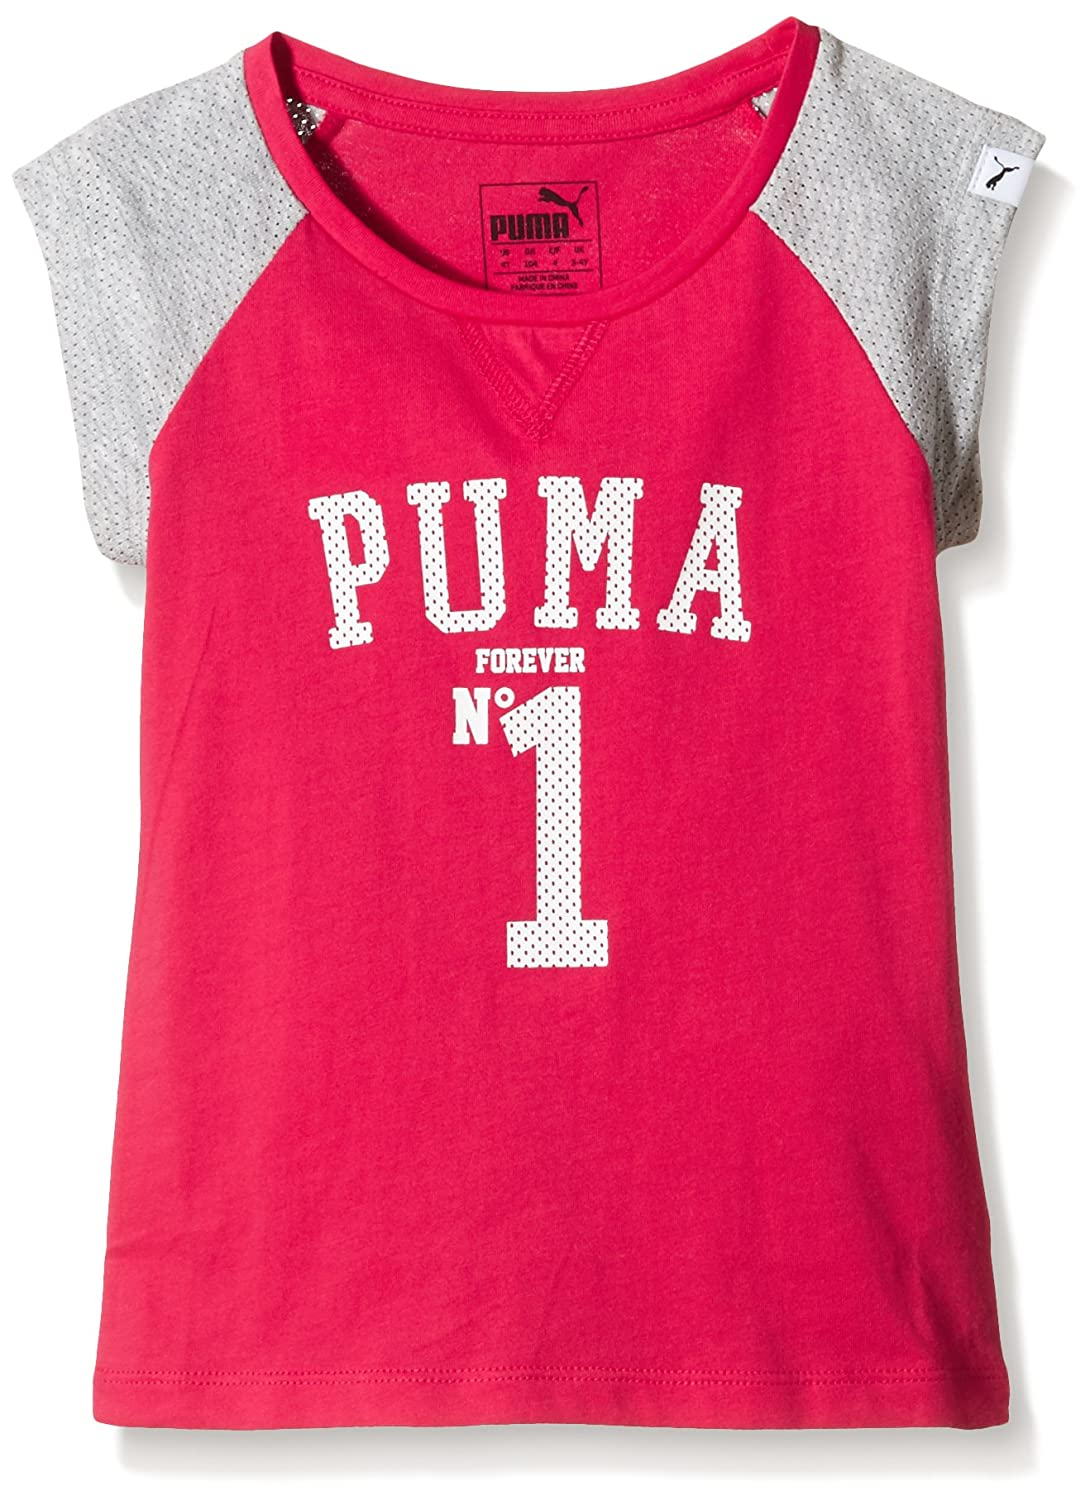 / Camiseta Infantil Style Athletics t/é g 116 Rose Red Puma/  Infantil T-Shirt Style Athletics tee G